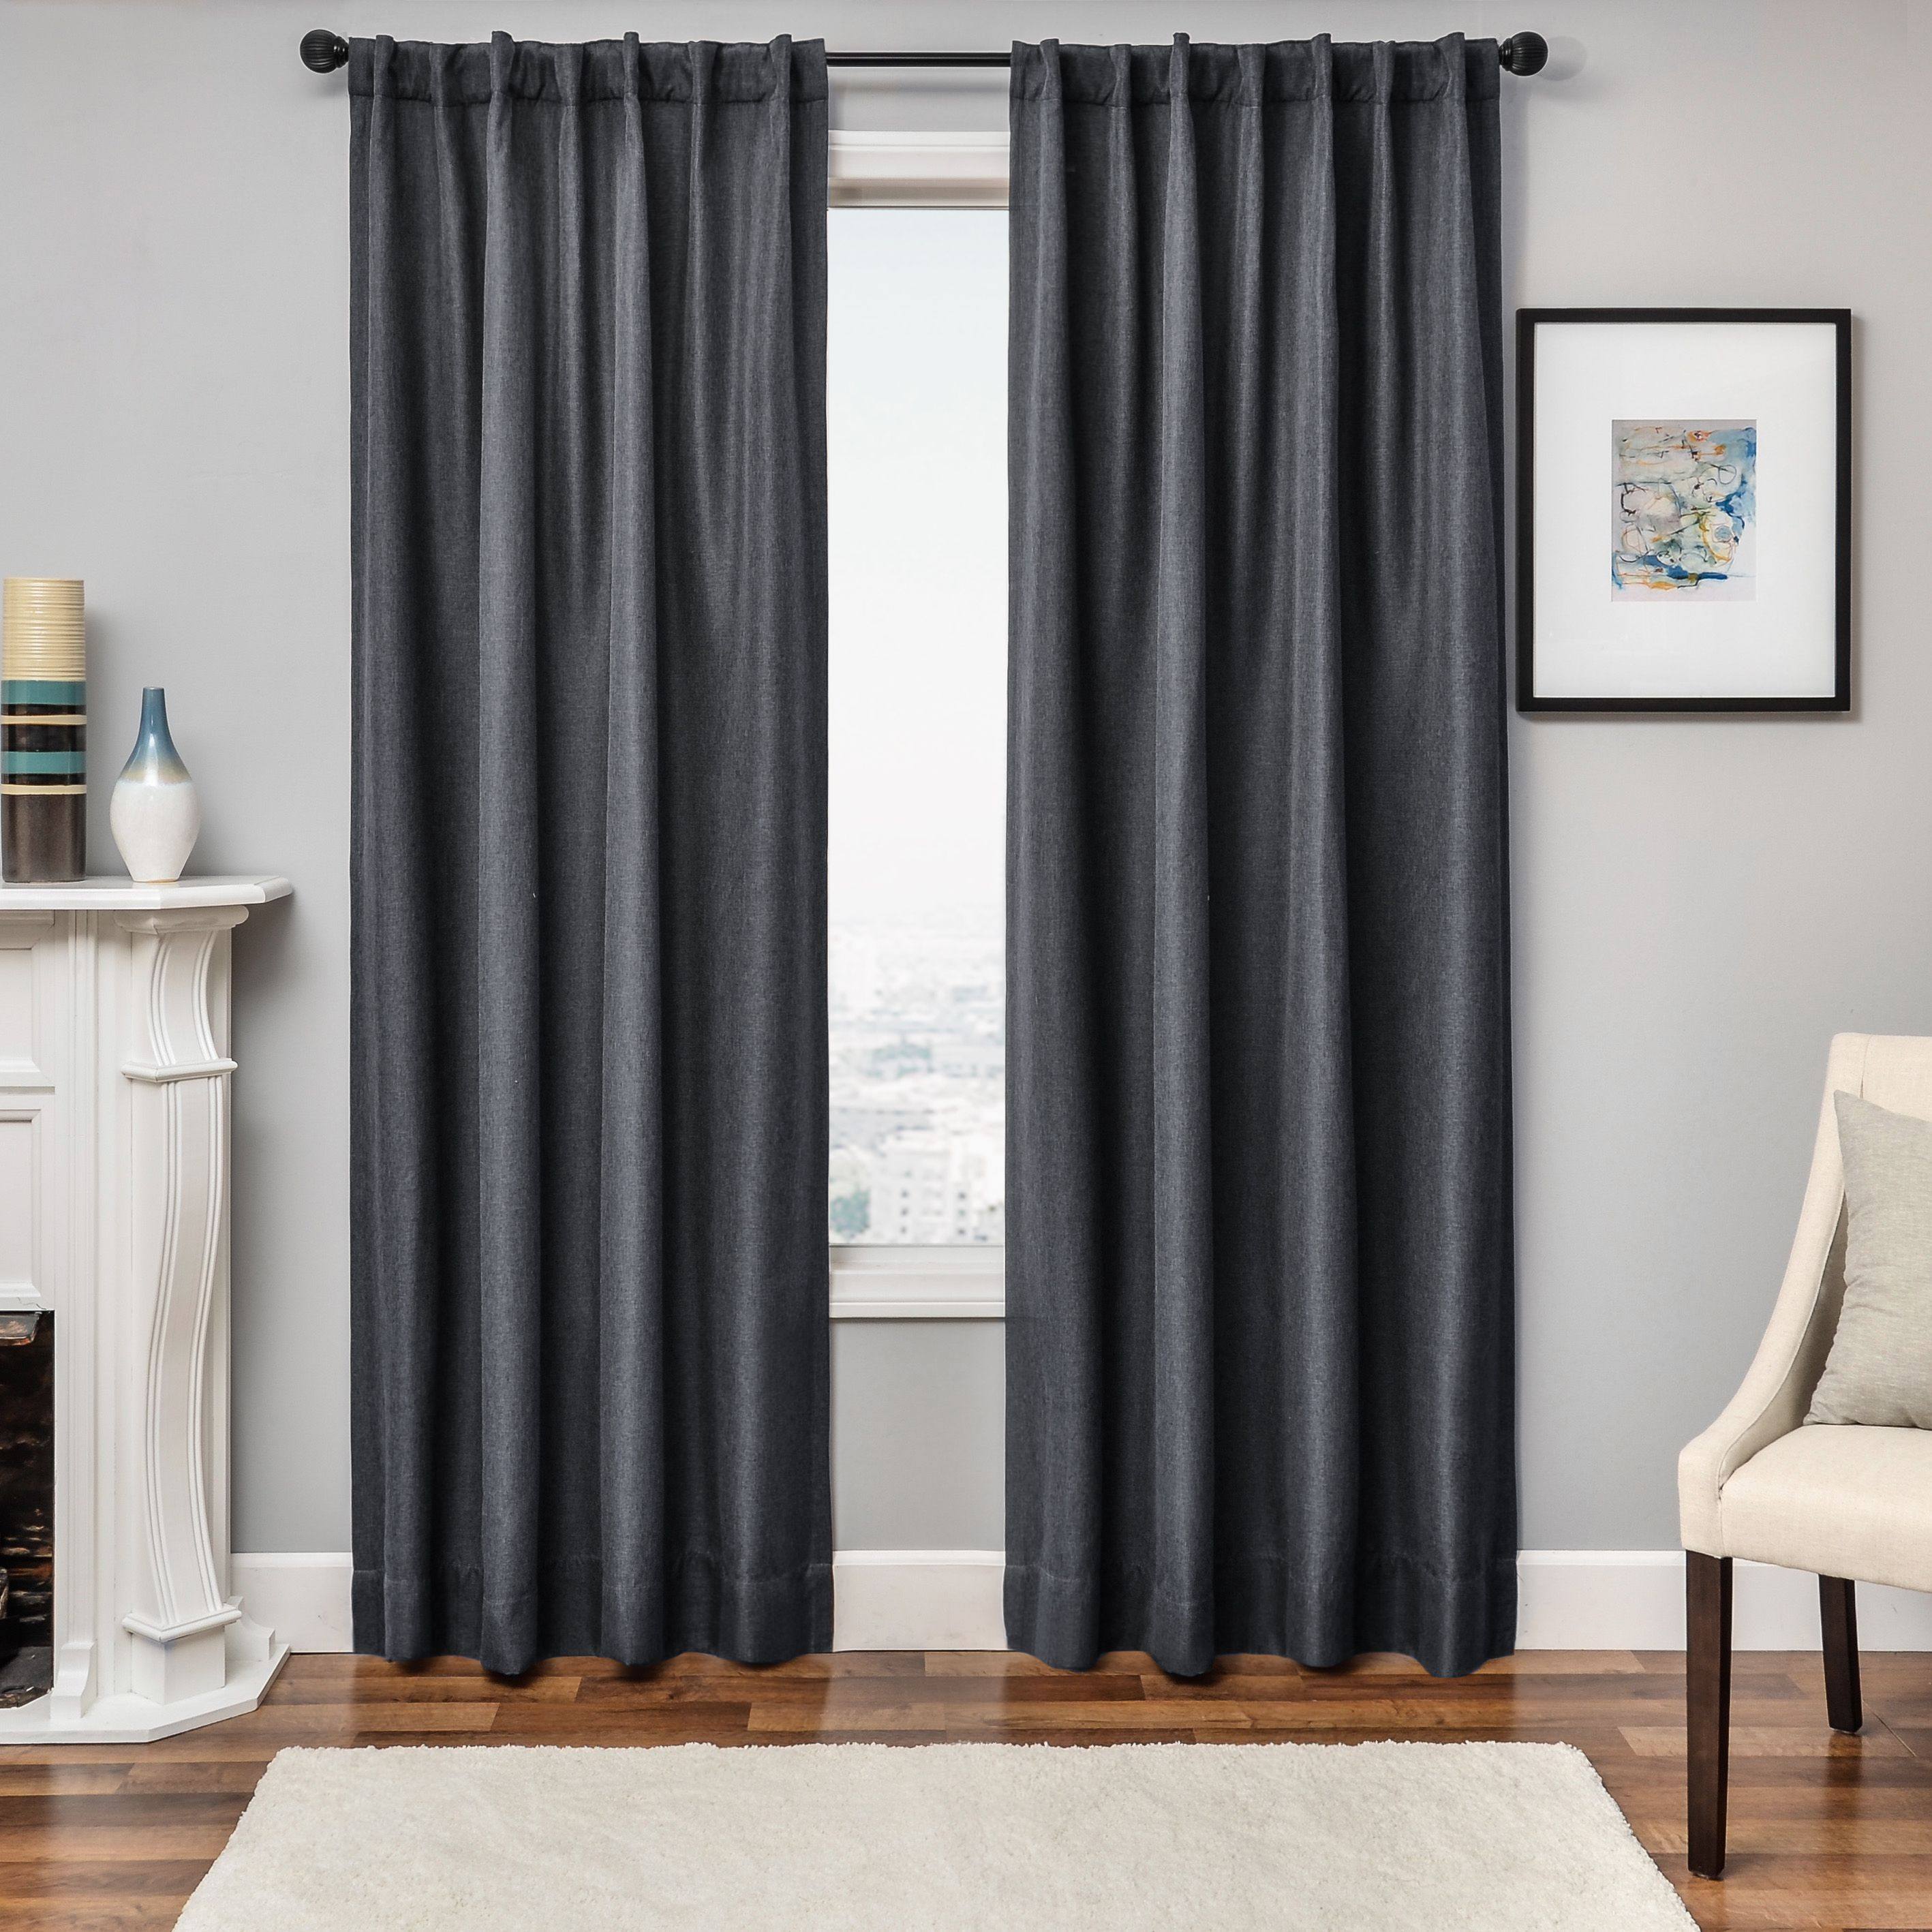 Softline Solara Faux Linen Blackout Curtain Panel 54x96 Charcoal Grey Bt Size 54 X 96 Poly Grey Curtains Living Room Panel Curtains Linen Blackout Curtains